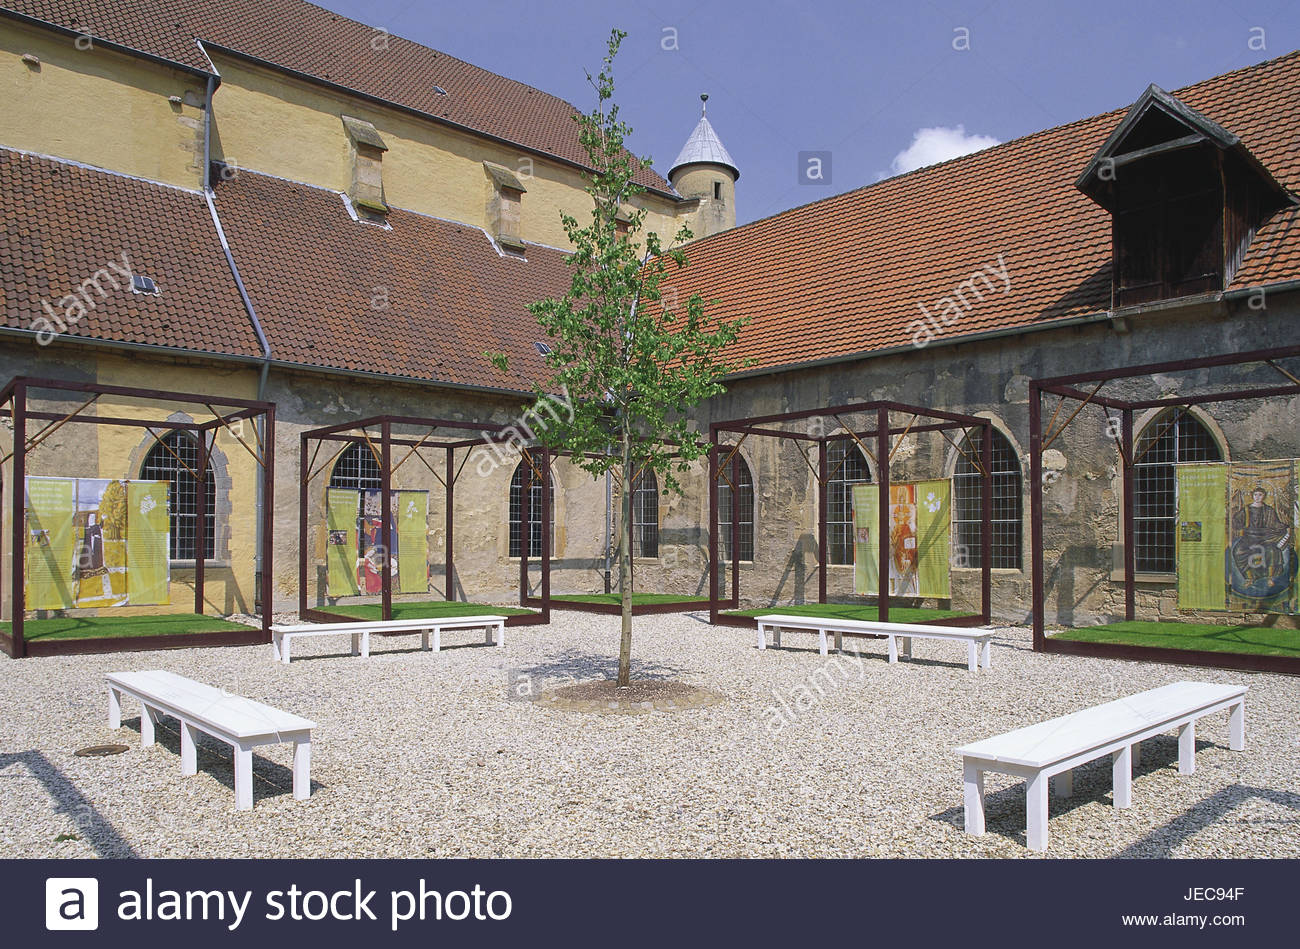 Germany, North Rhine-Westphalia, Lichtenau, home Dal, cloister, cross court, substance trajectories, illustrations, - Stock Image